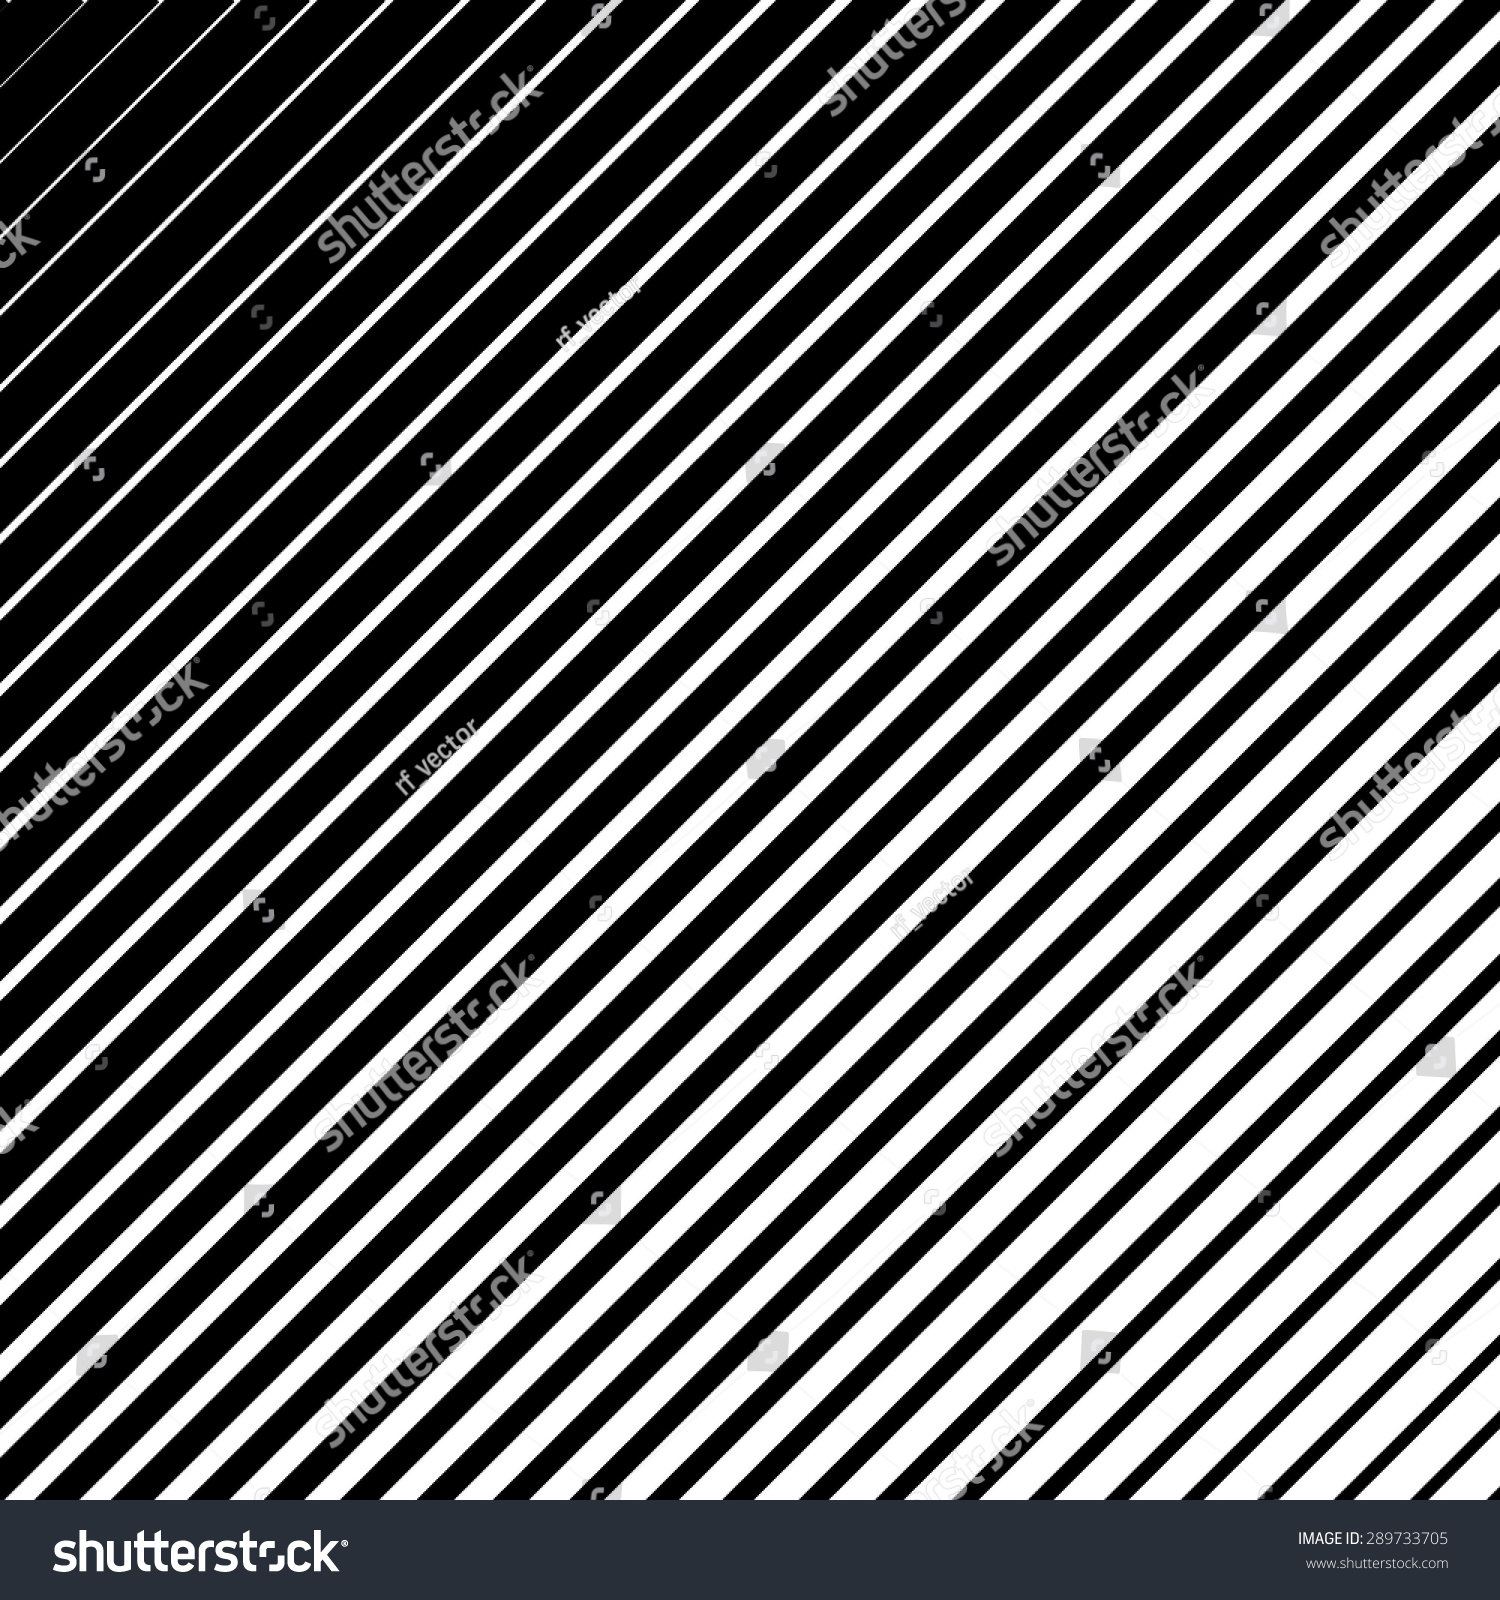 Line Texture Background : Lined pattern lines background oblique diagonal stock